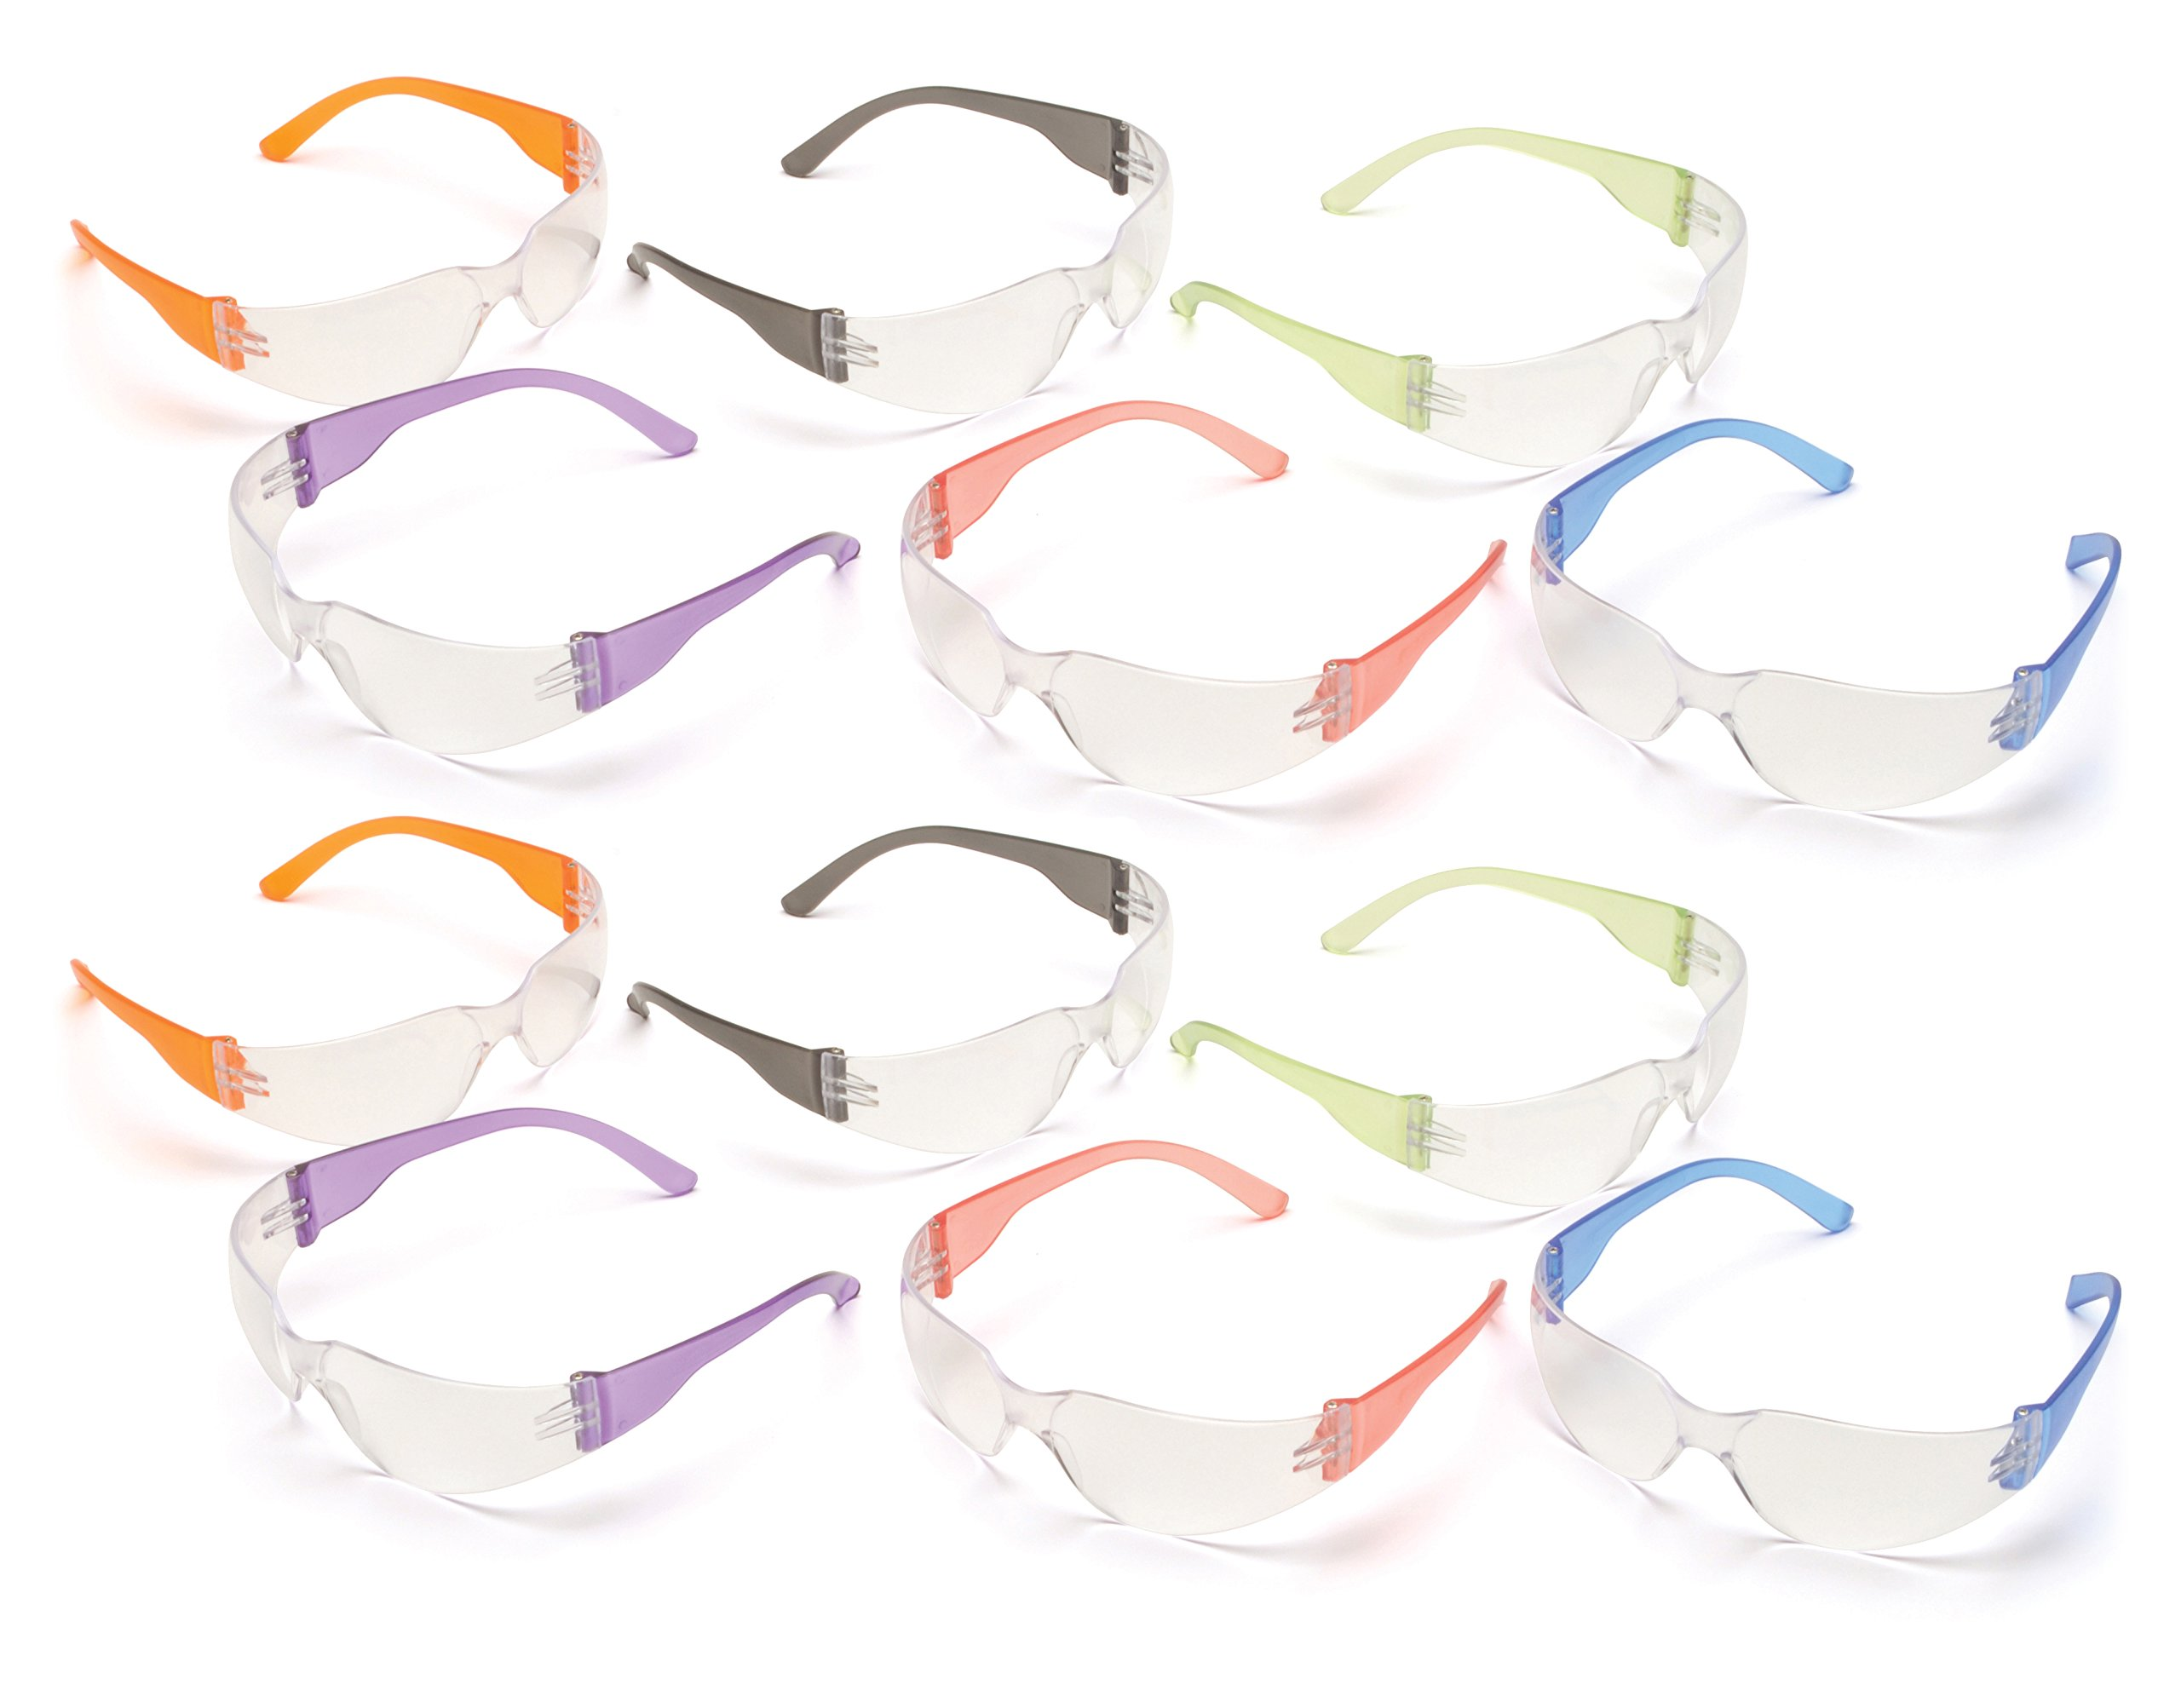 Pyramex Mini Intruder Youth Safety Glasses (12-Pack) - For Children or Women with Smaller Facial Sizes by Pyramex Safety